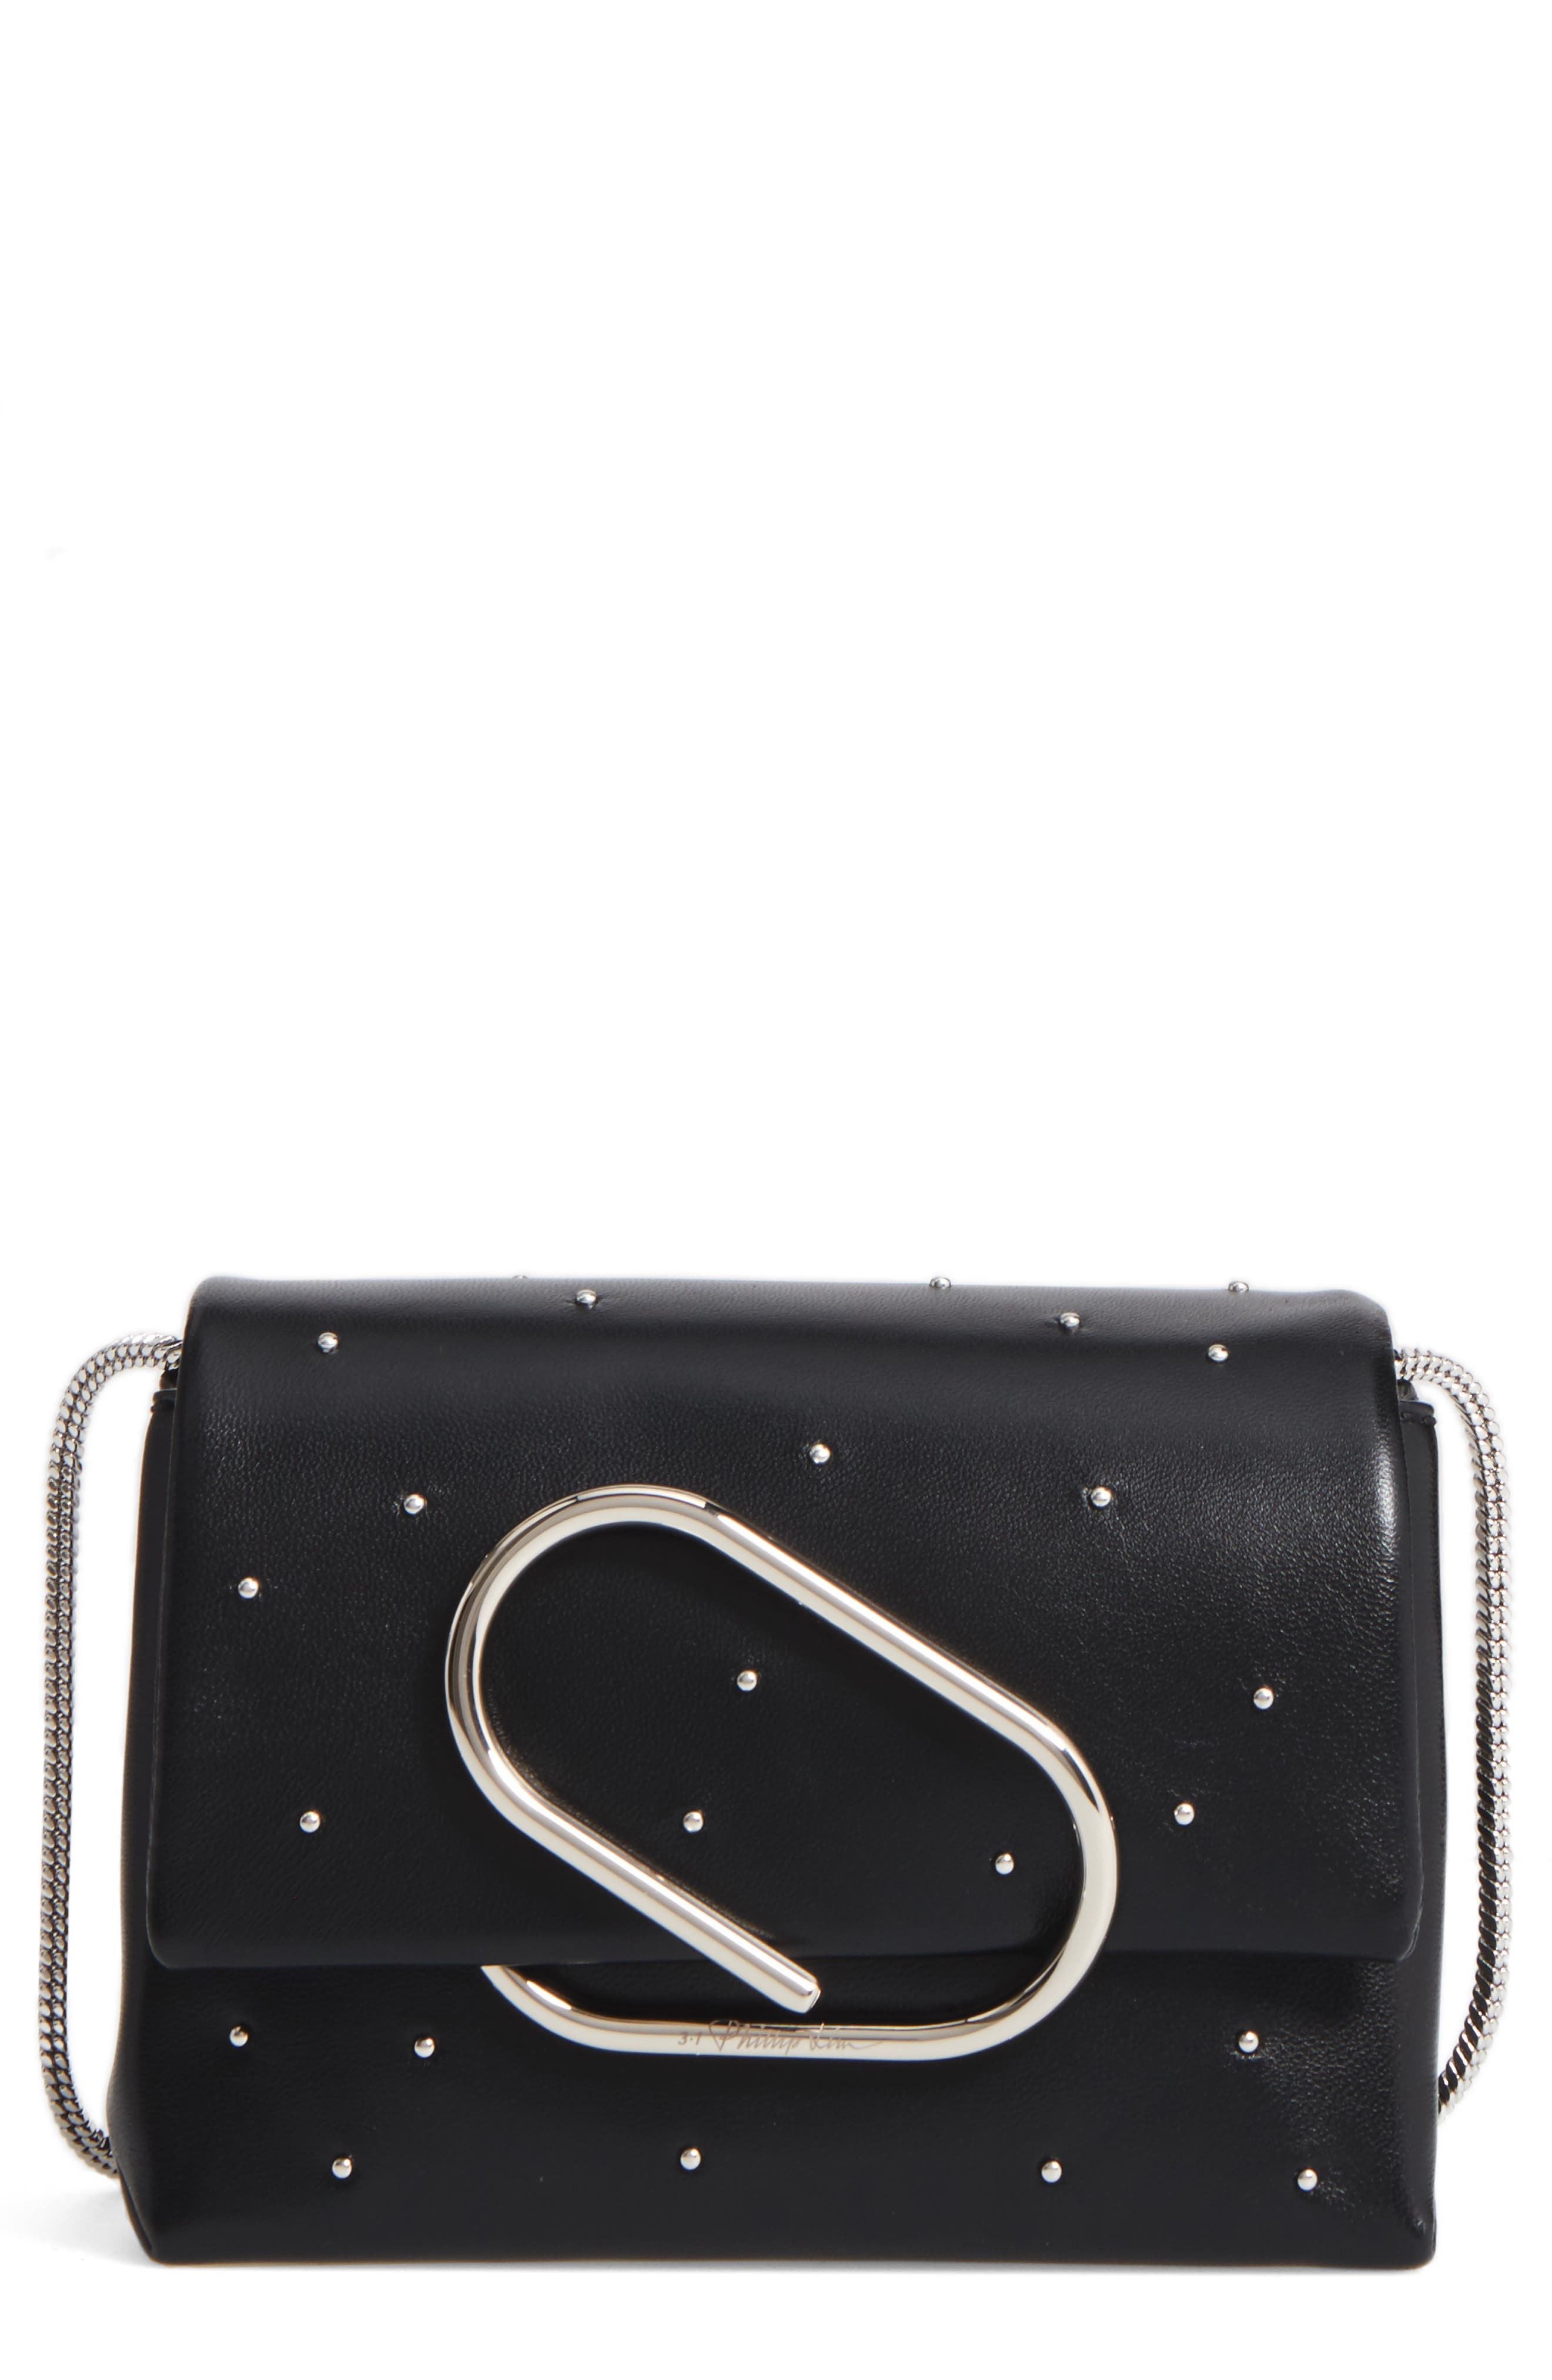 Alternate Image 1 Selected - 3.1 Phillip Lim Micro Alix Leather Crossbody Bag